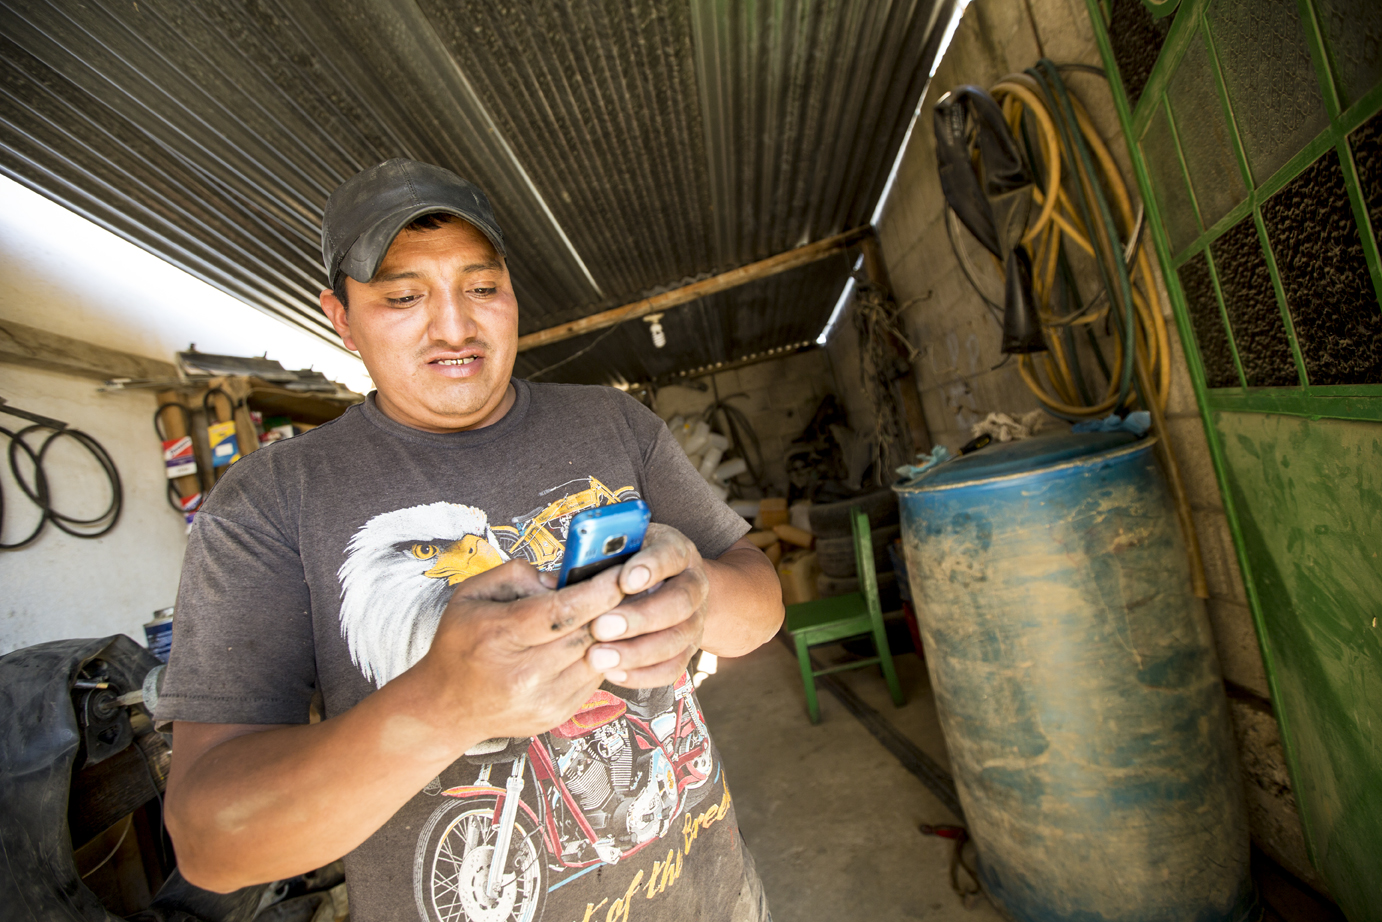 Pedro Macario, a client of Tienda Pago, can quickly access the capital he needs to keep his shop running.